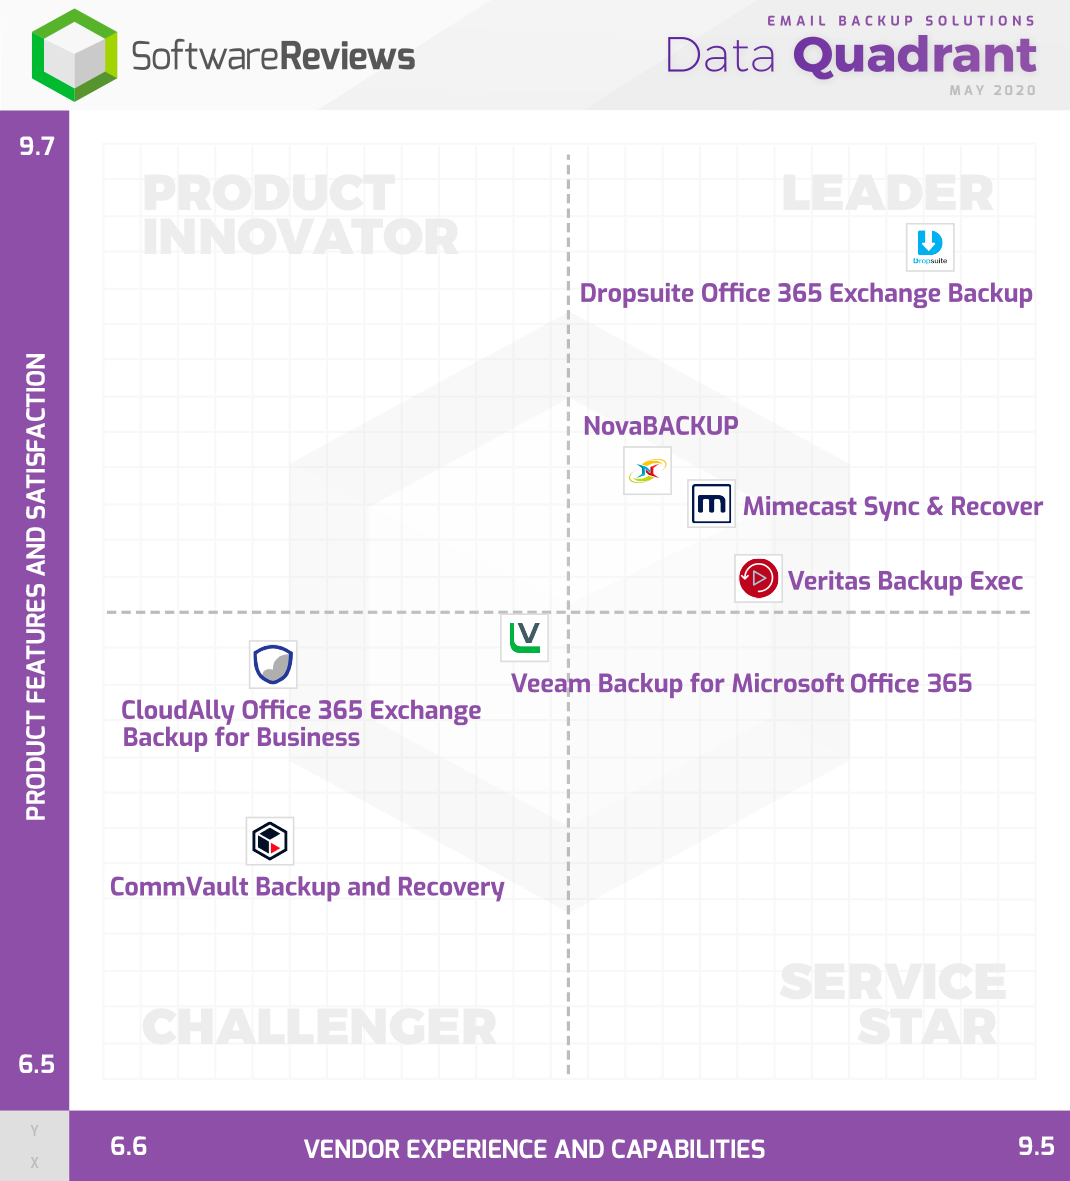 Email Backup Solutions Data Quadrant